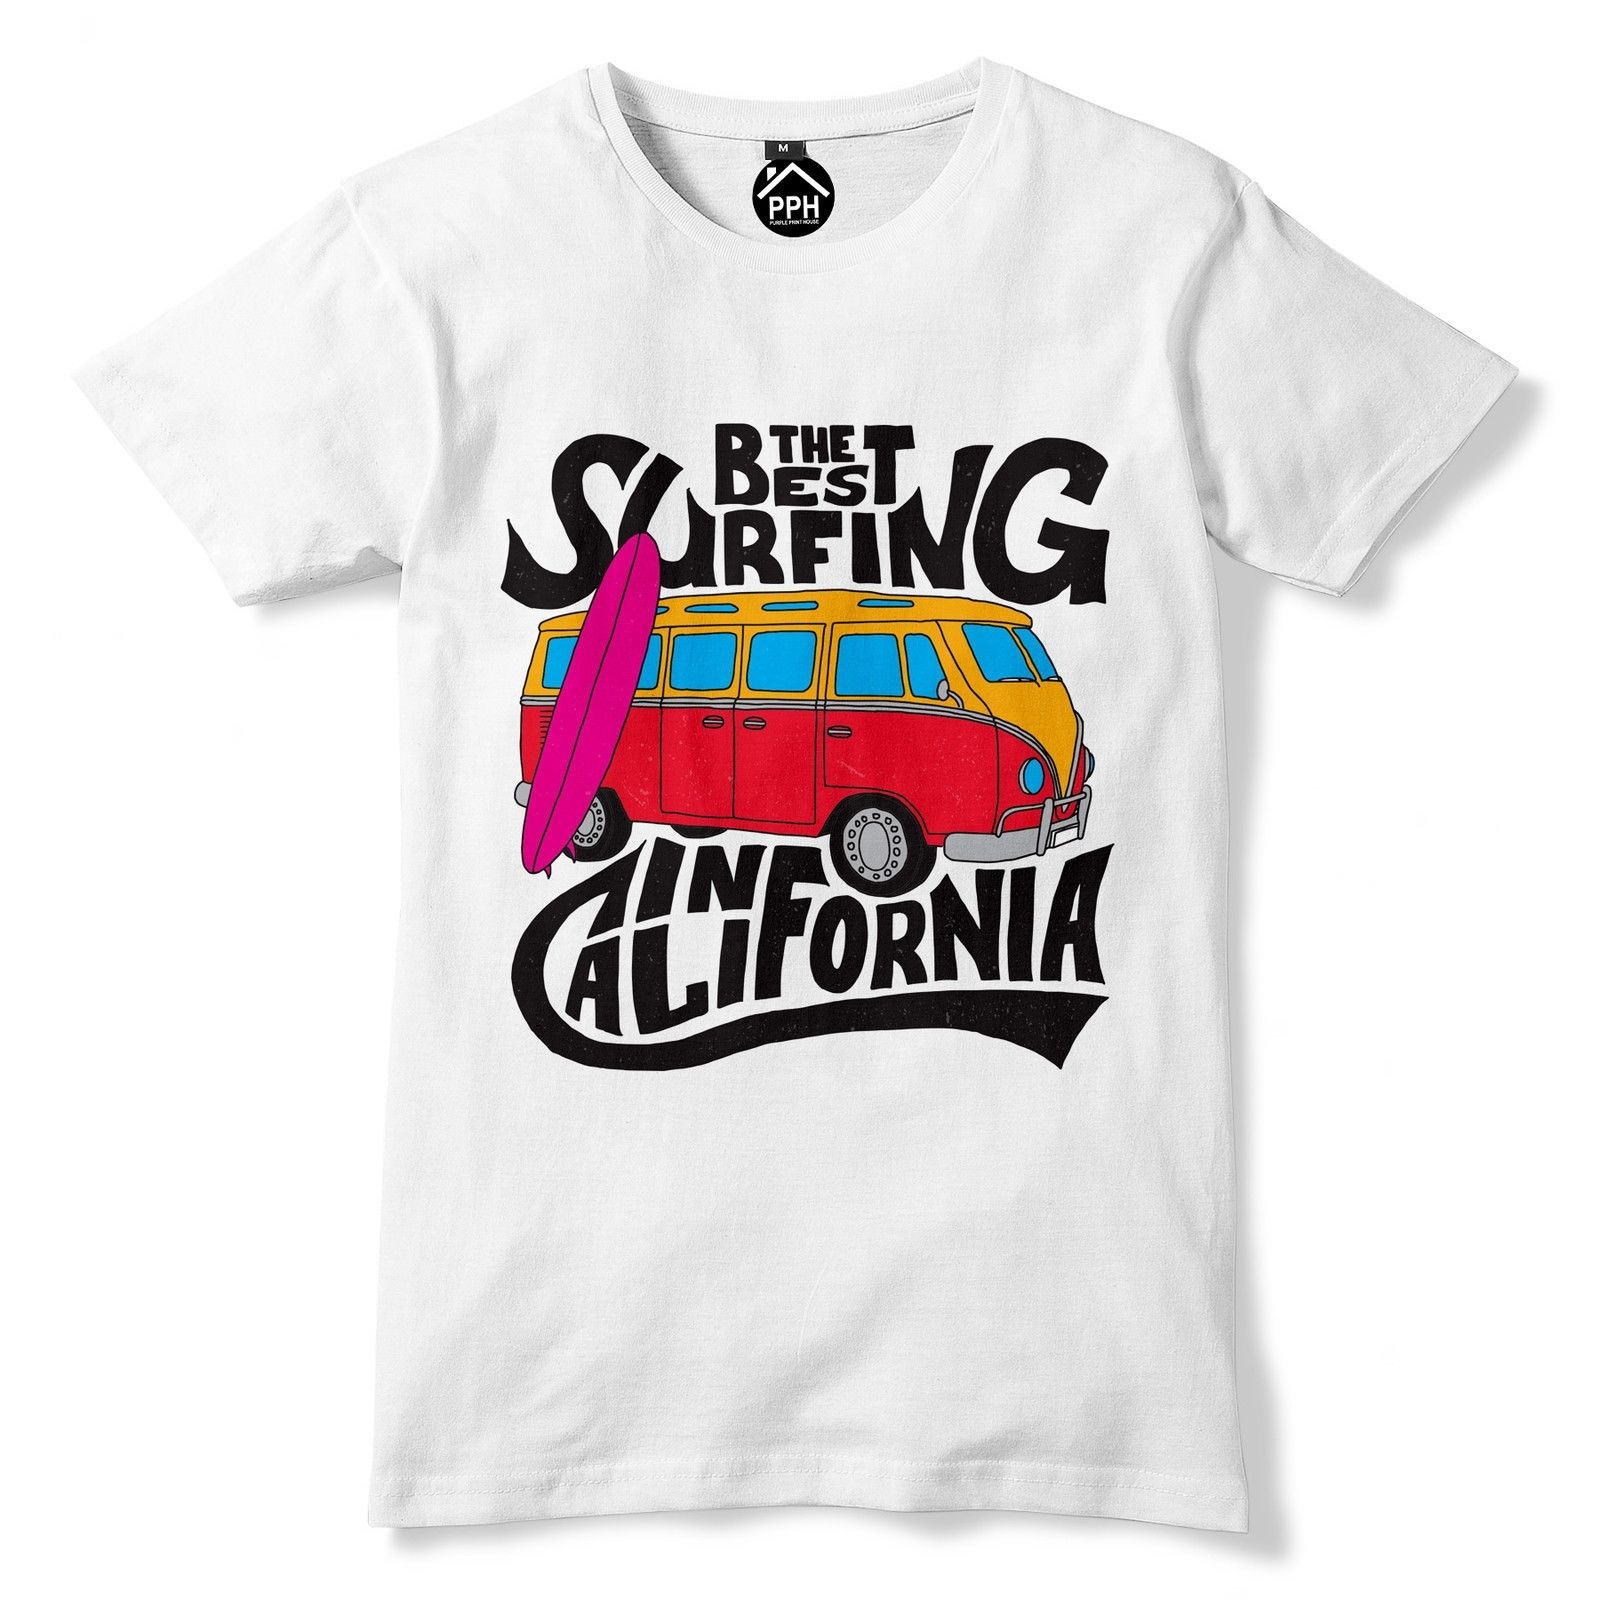 The Best Surfing California Cali Tshirt Surfed Mens Vintage Campervan T Shirt 126 T-Shirt Short Sleeve Brand